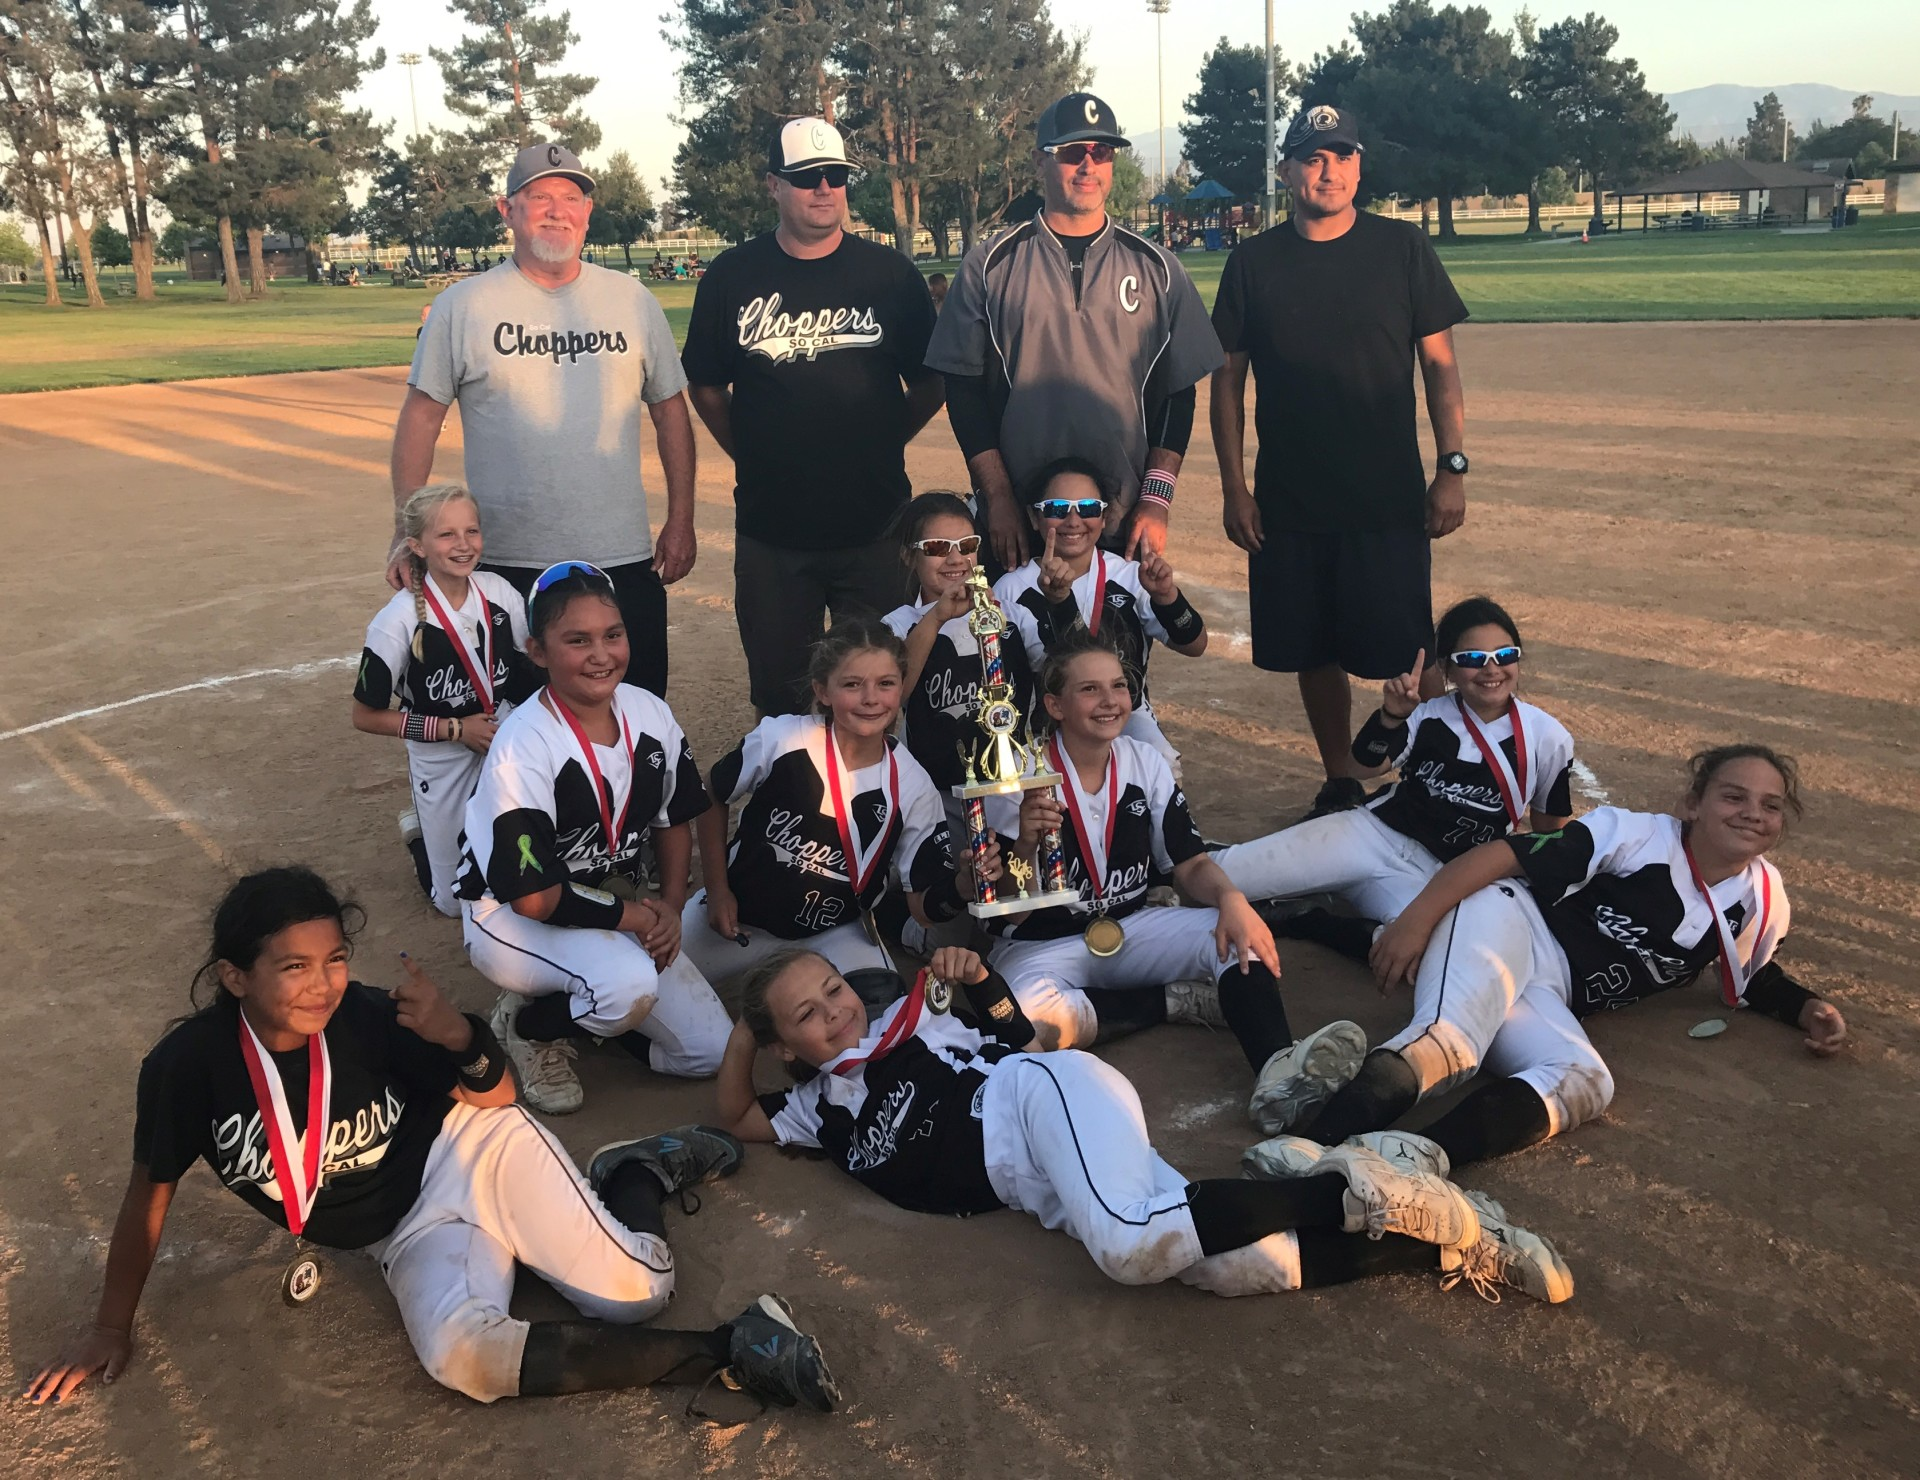 10u Silver - 1st Place - So Cal Choppers